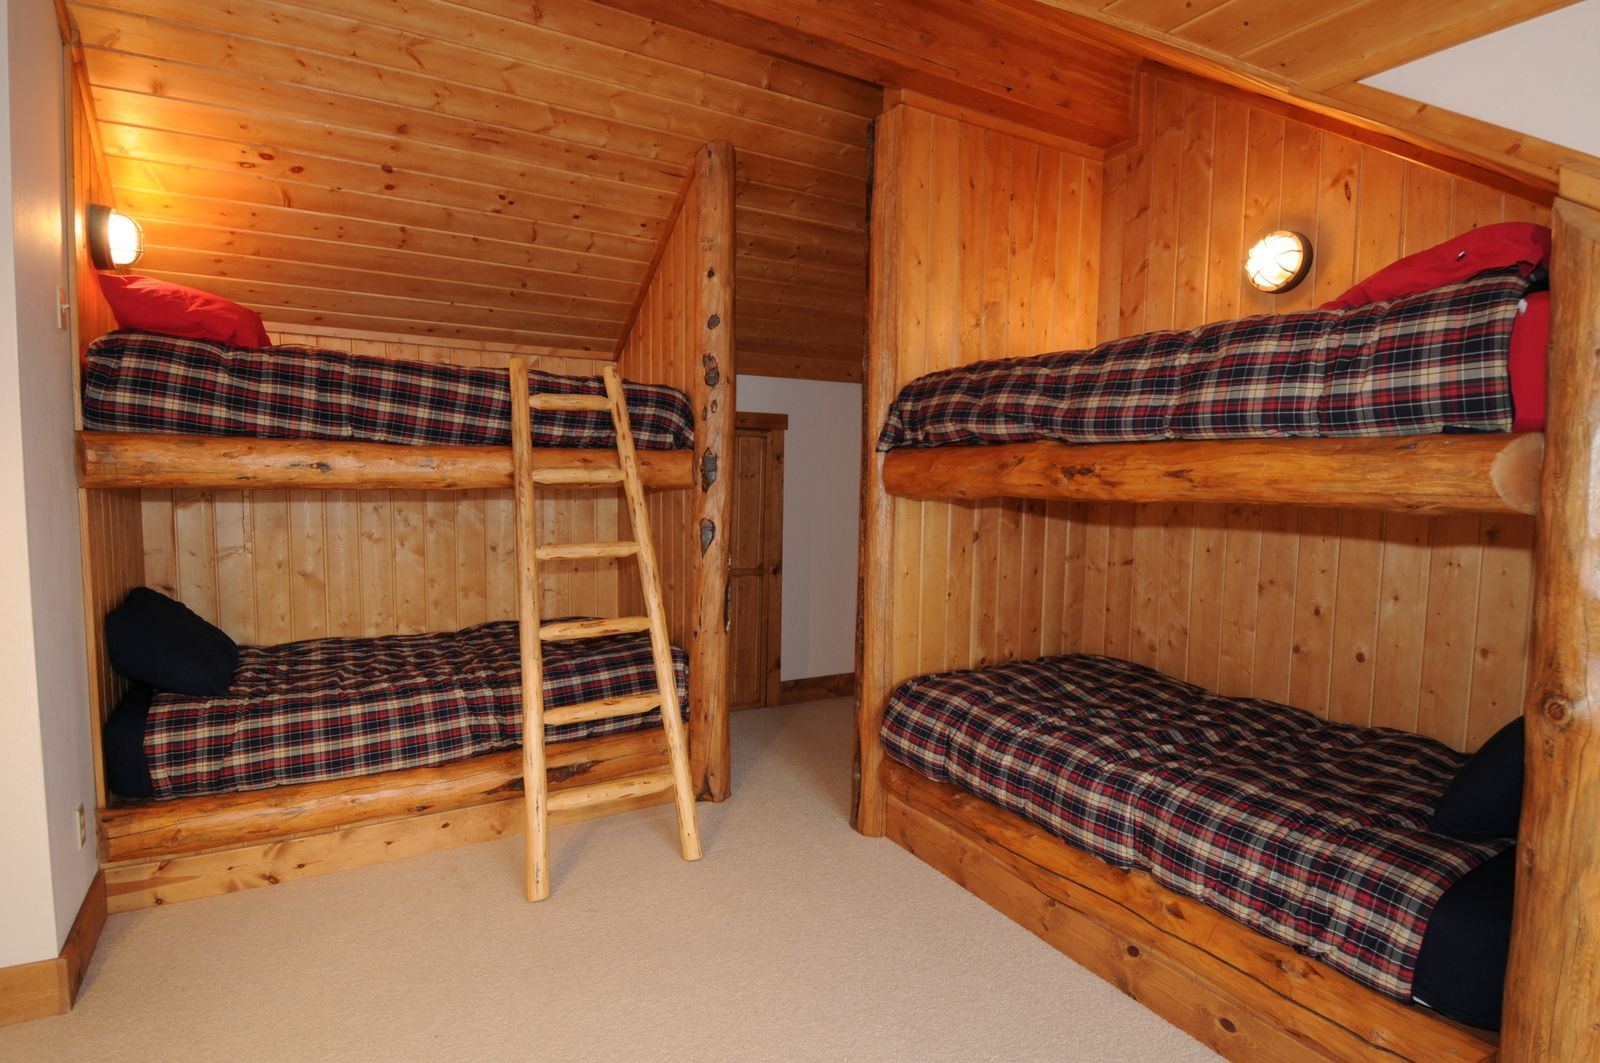 Two Sets Of Built In Bunk Beds Provide More Sleeping Space With